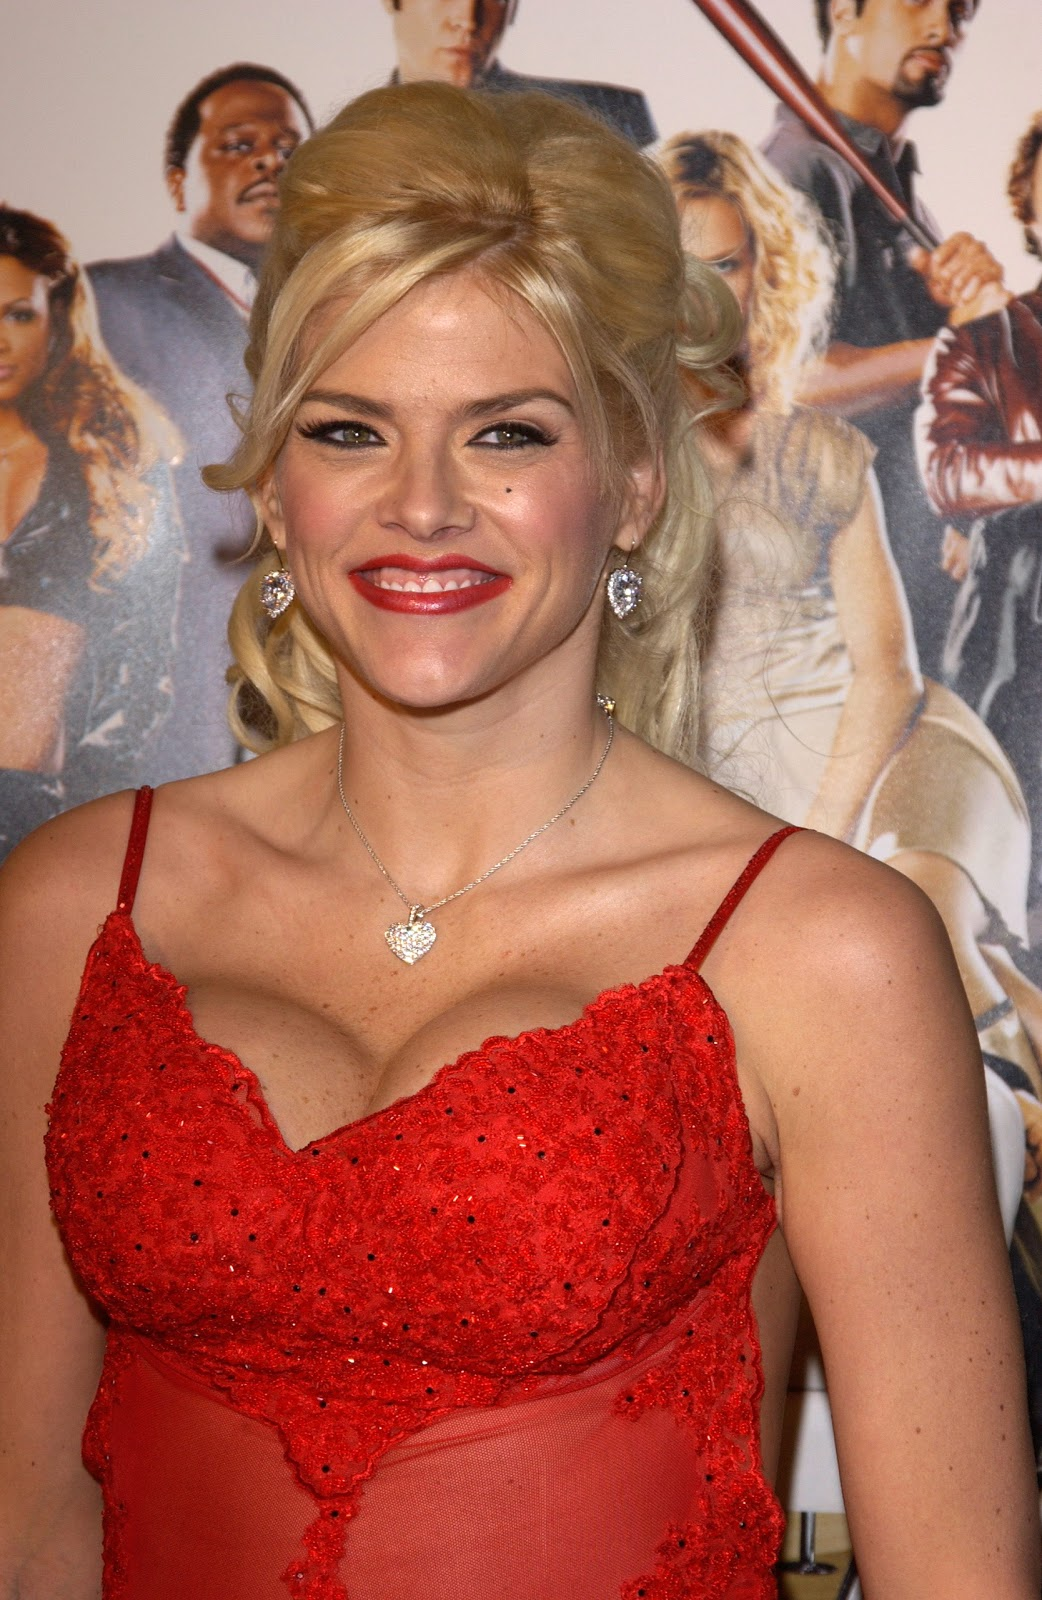 Anna nicole smith essay